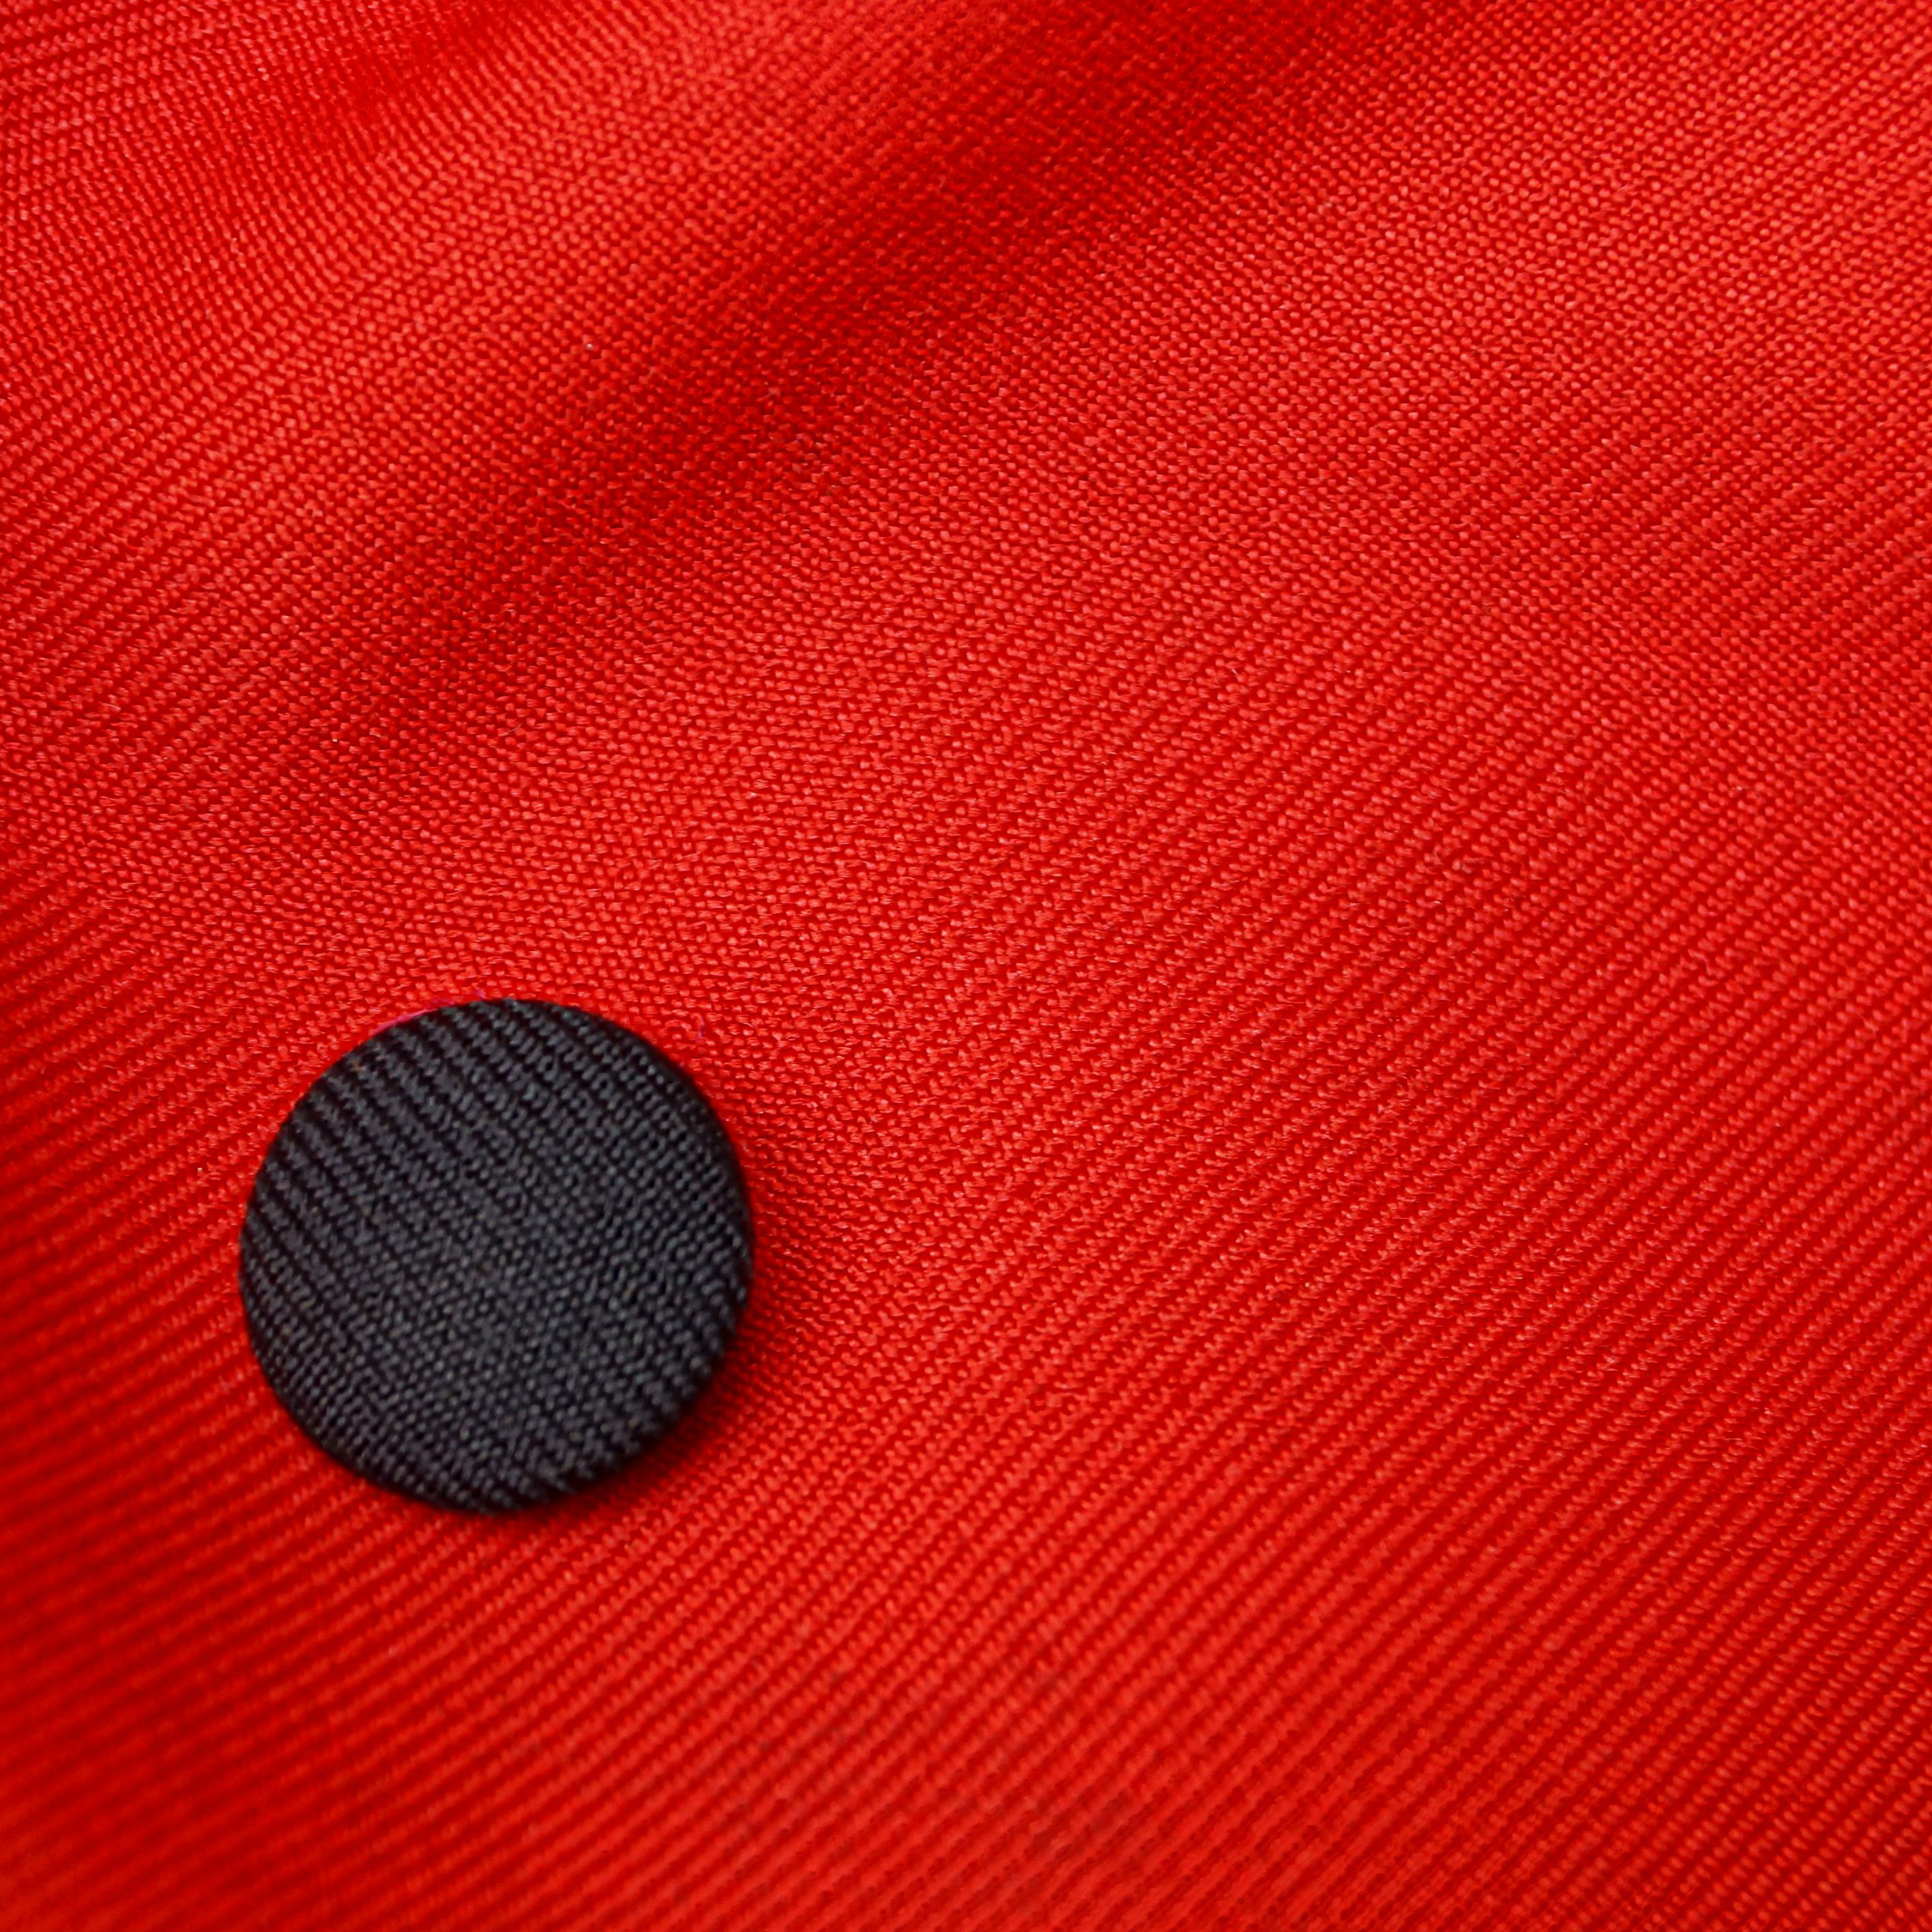 Ceramic Buttons Textured red and black Buttons Round Buttons